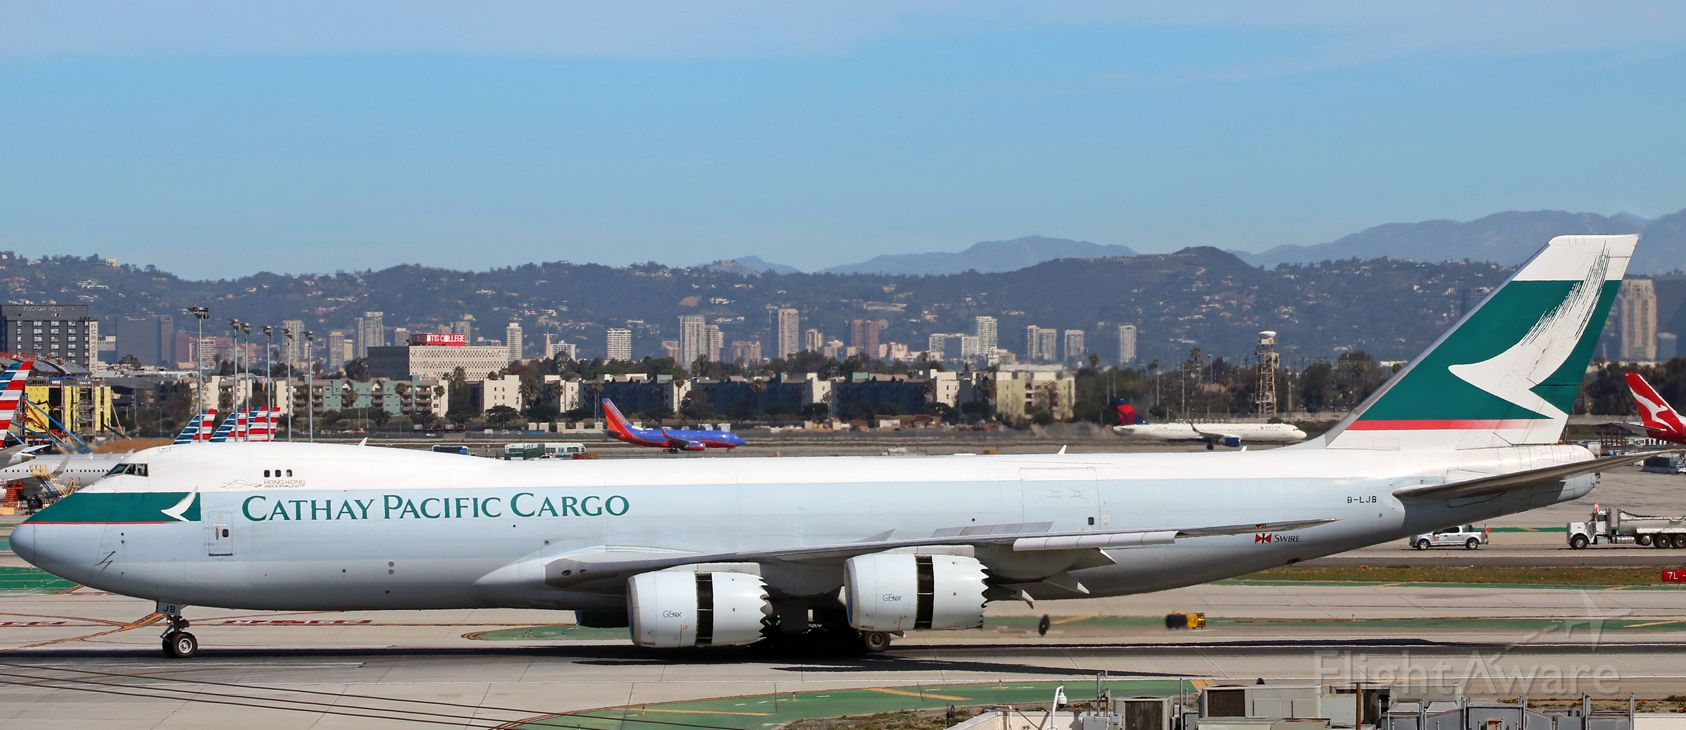 BOEING 747-8 (B-LJB) - A Cathay Pacific Cargo B748 (B-LJB) is just beginning to turn toward me after landing on LAXs runway 25L to complete the last segment of a Hong Kong-Anchorage-Los Angeles (VHHH-PANC-KLAX) run.